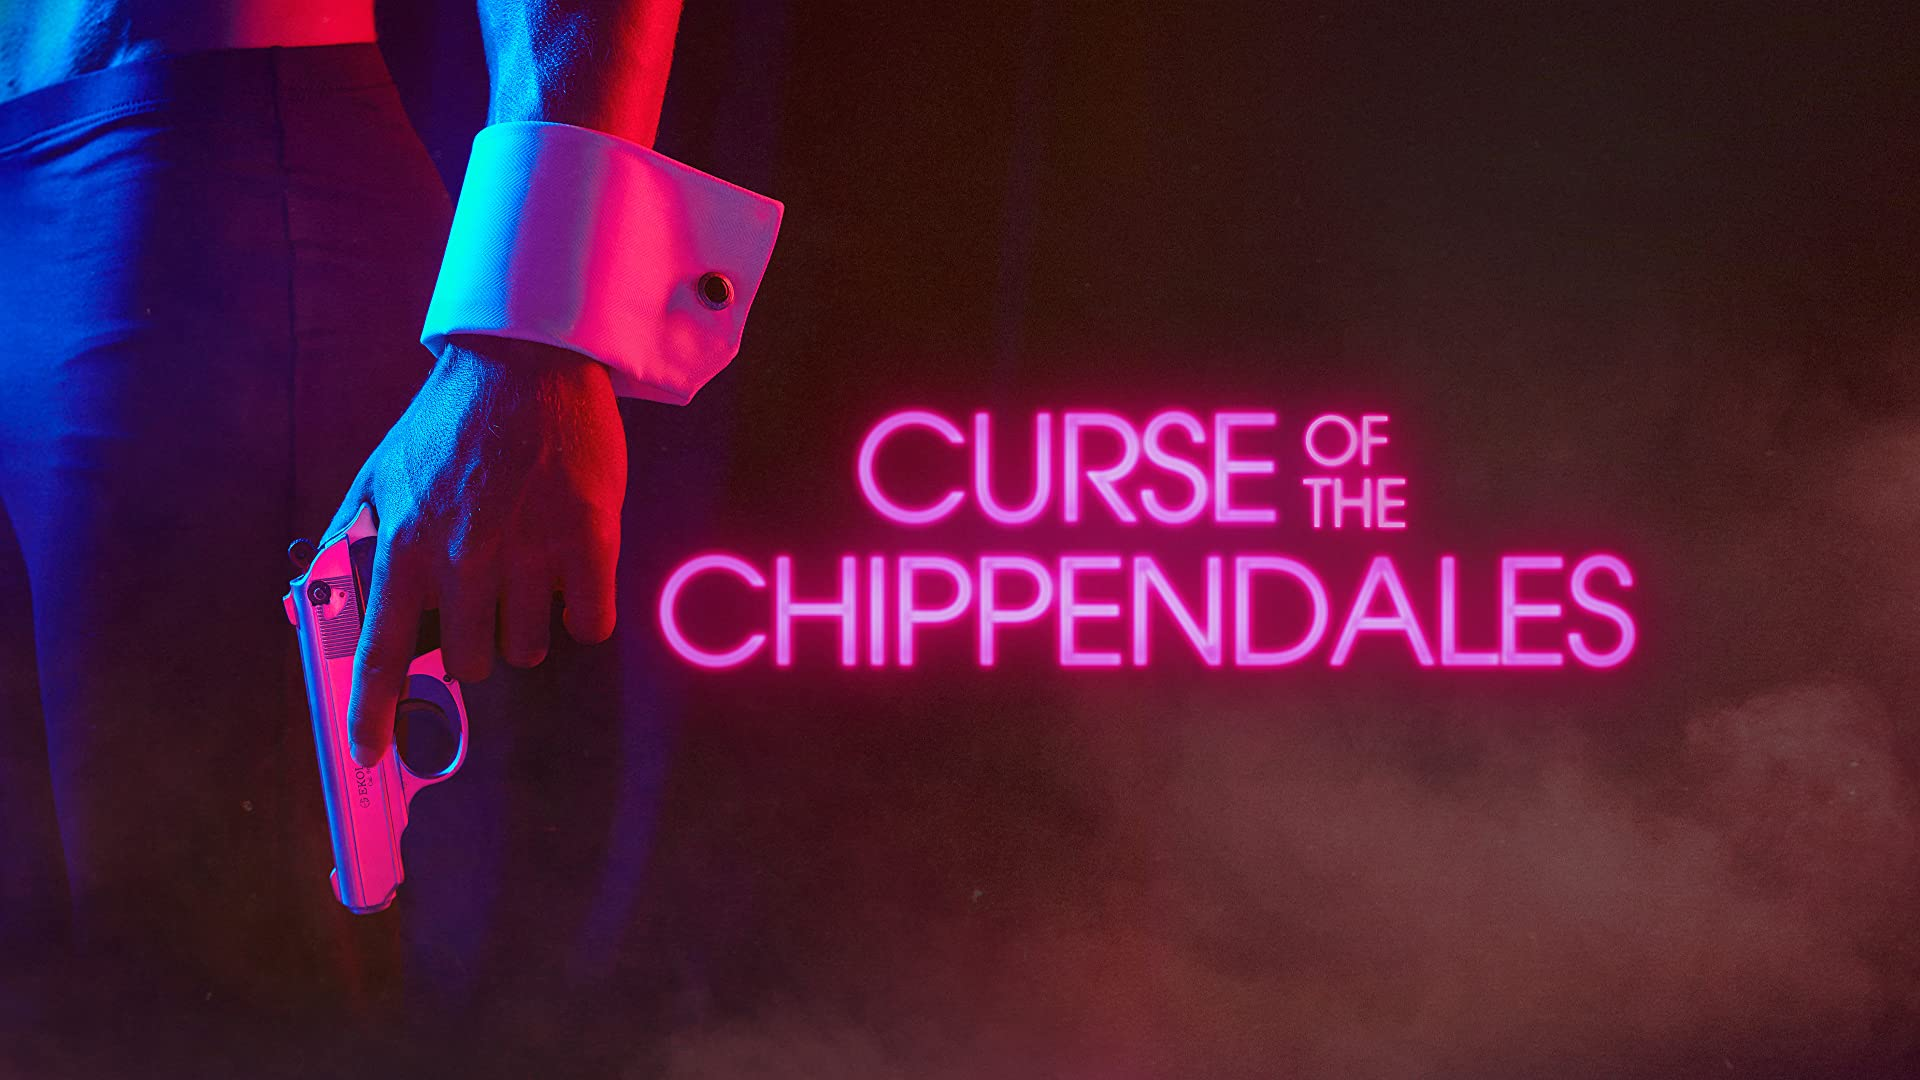 Curse of the Chippendales - Season 1